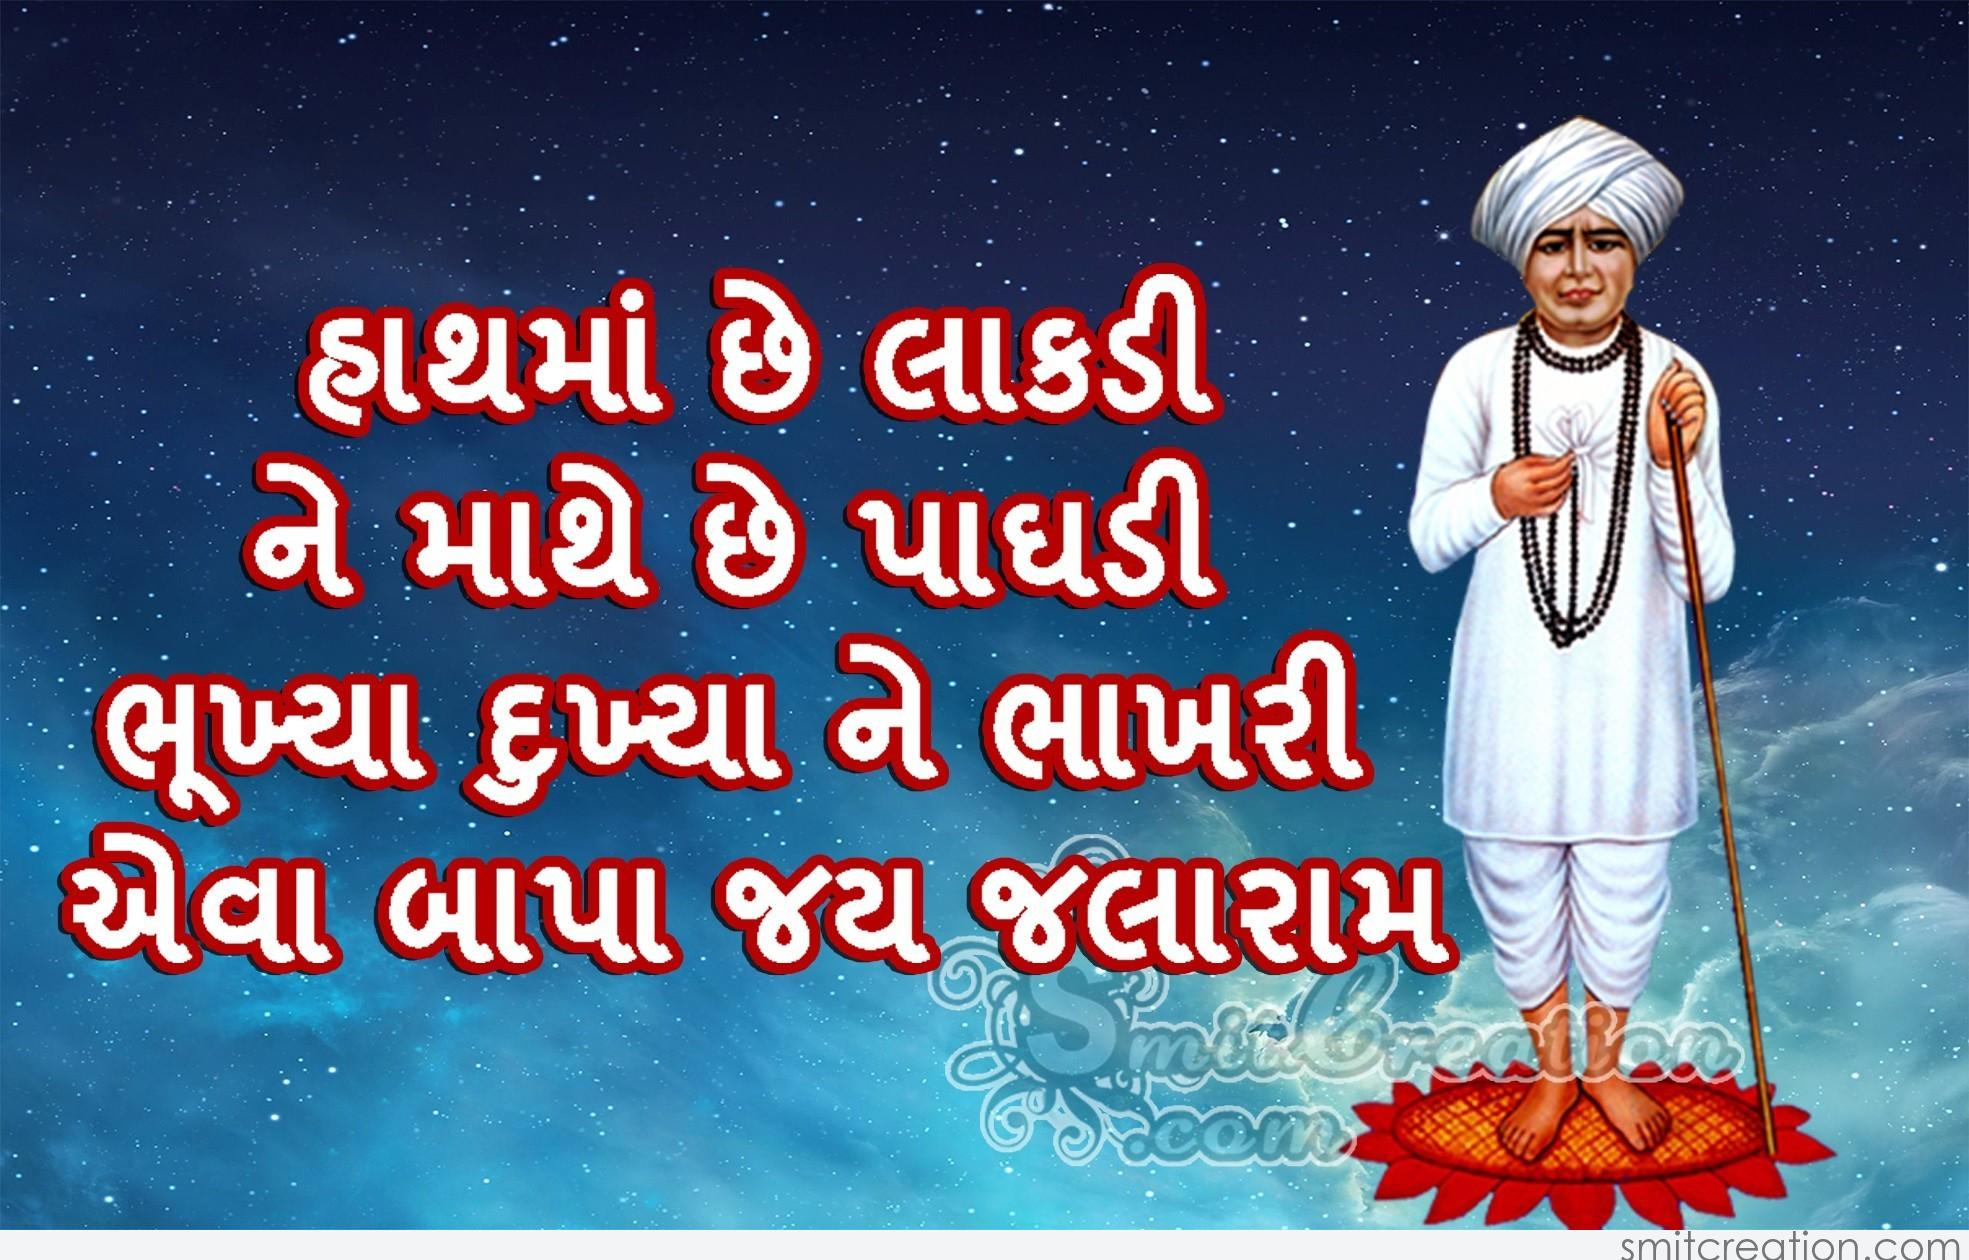 Jalaram Jayanti Pictures And Graphics Page 3